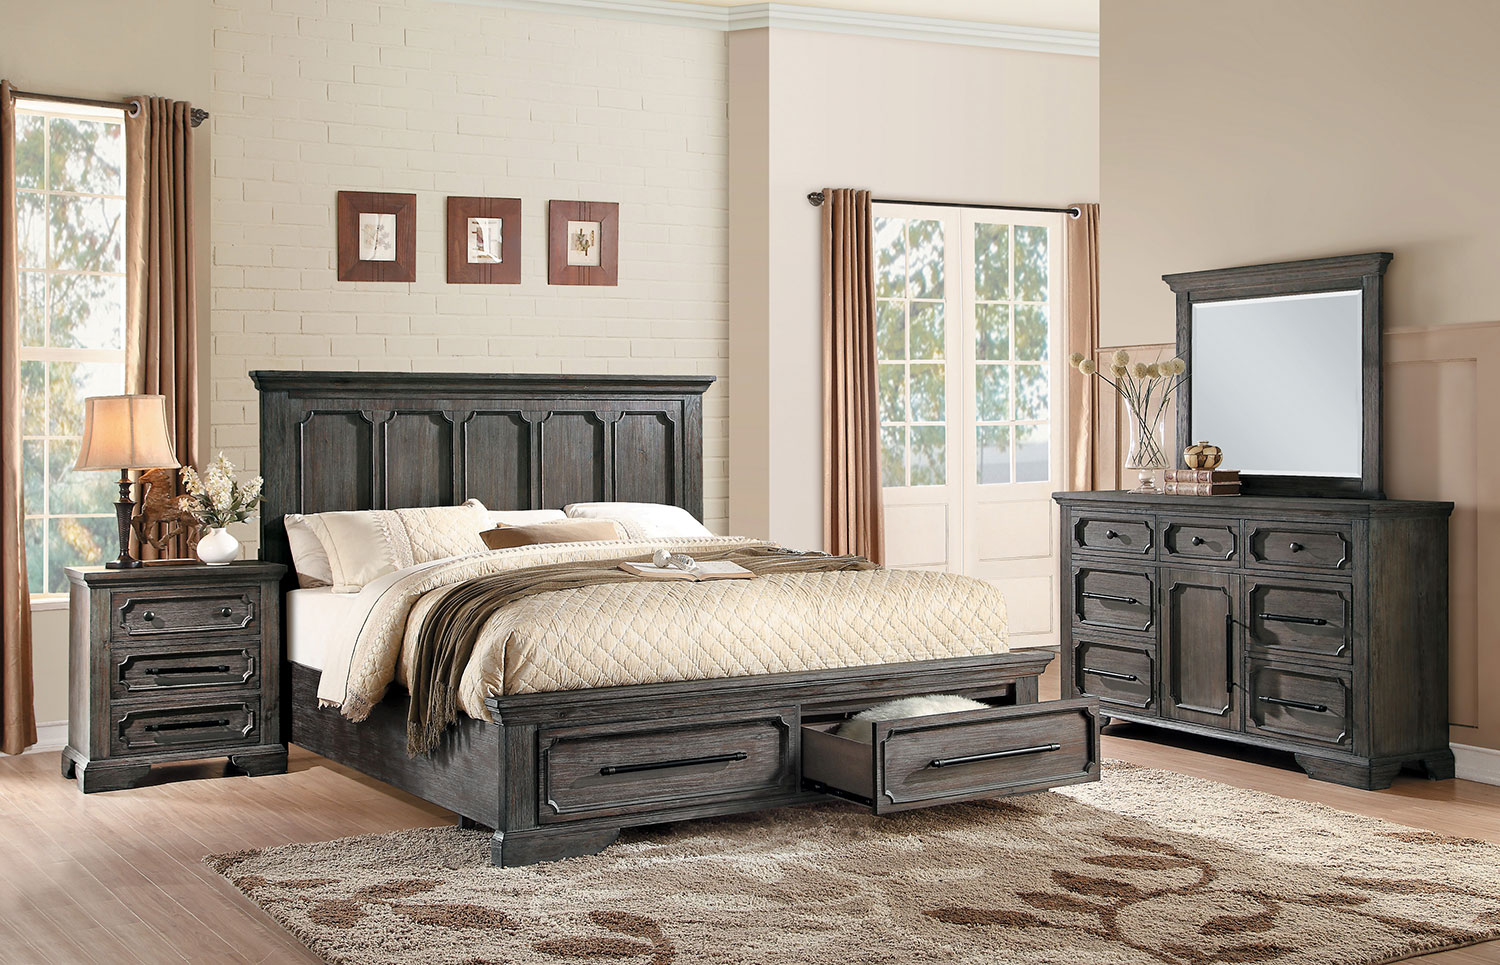 Homelegance Toulon Storage Platform Bedroom Set - Rustic Acacia